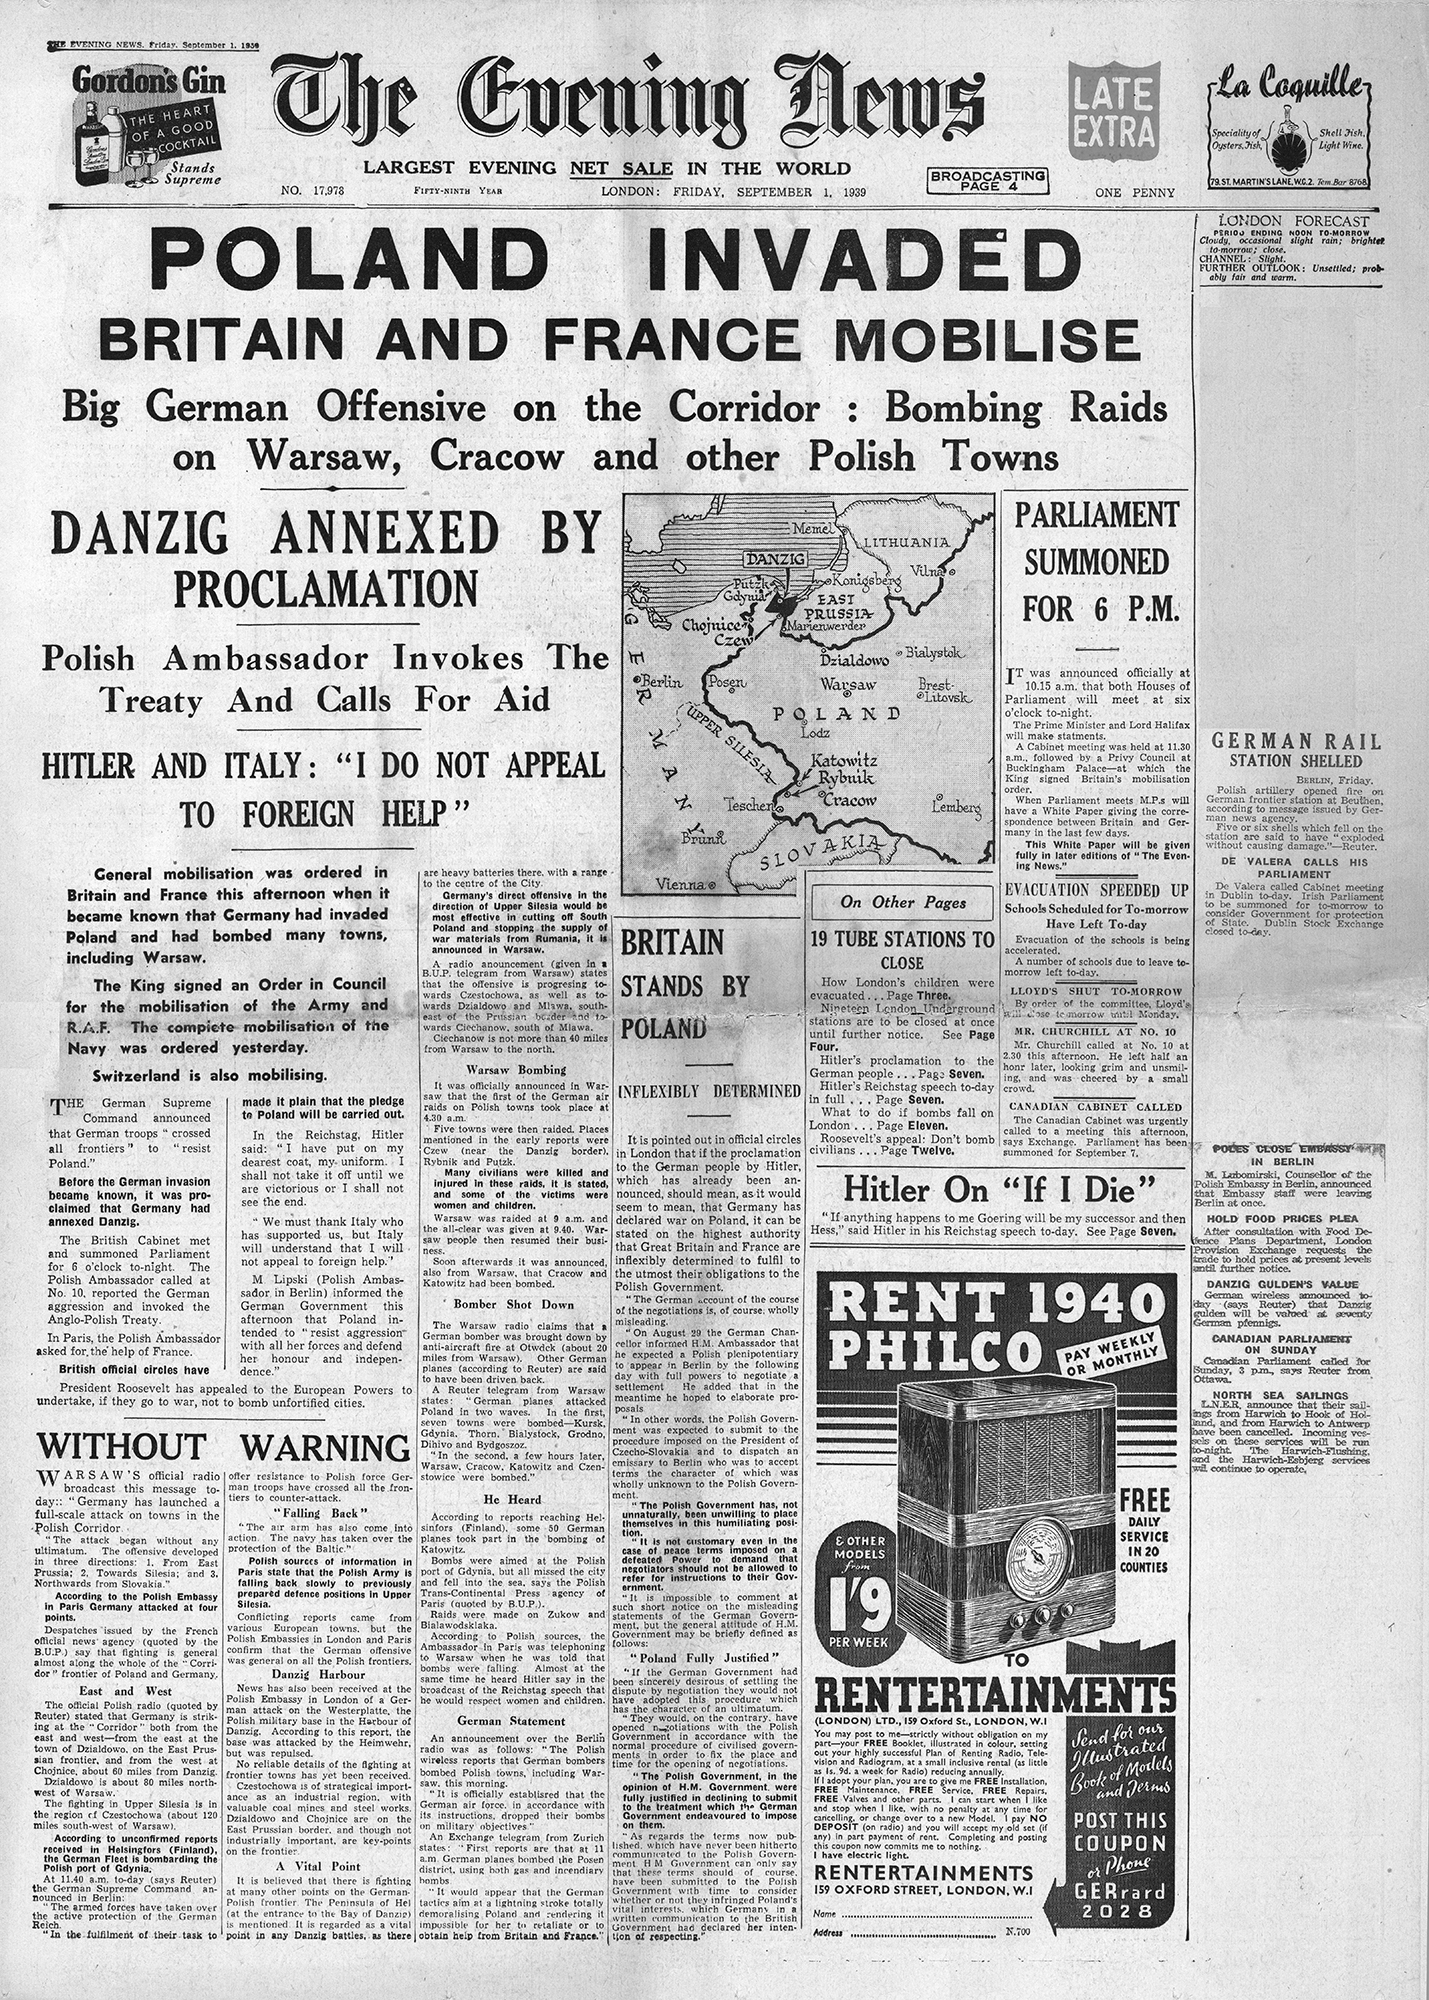 Front page of The Evening News, 1st September 1939 (click to enlarge)